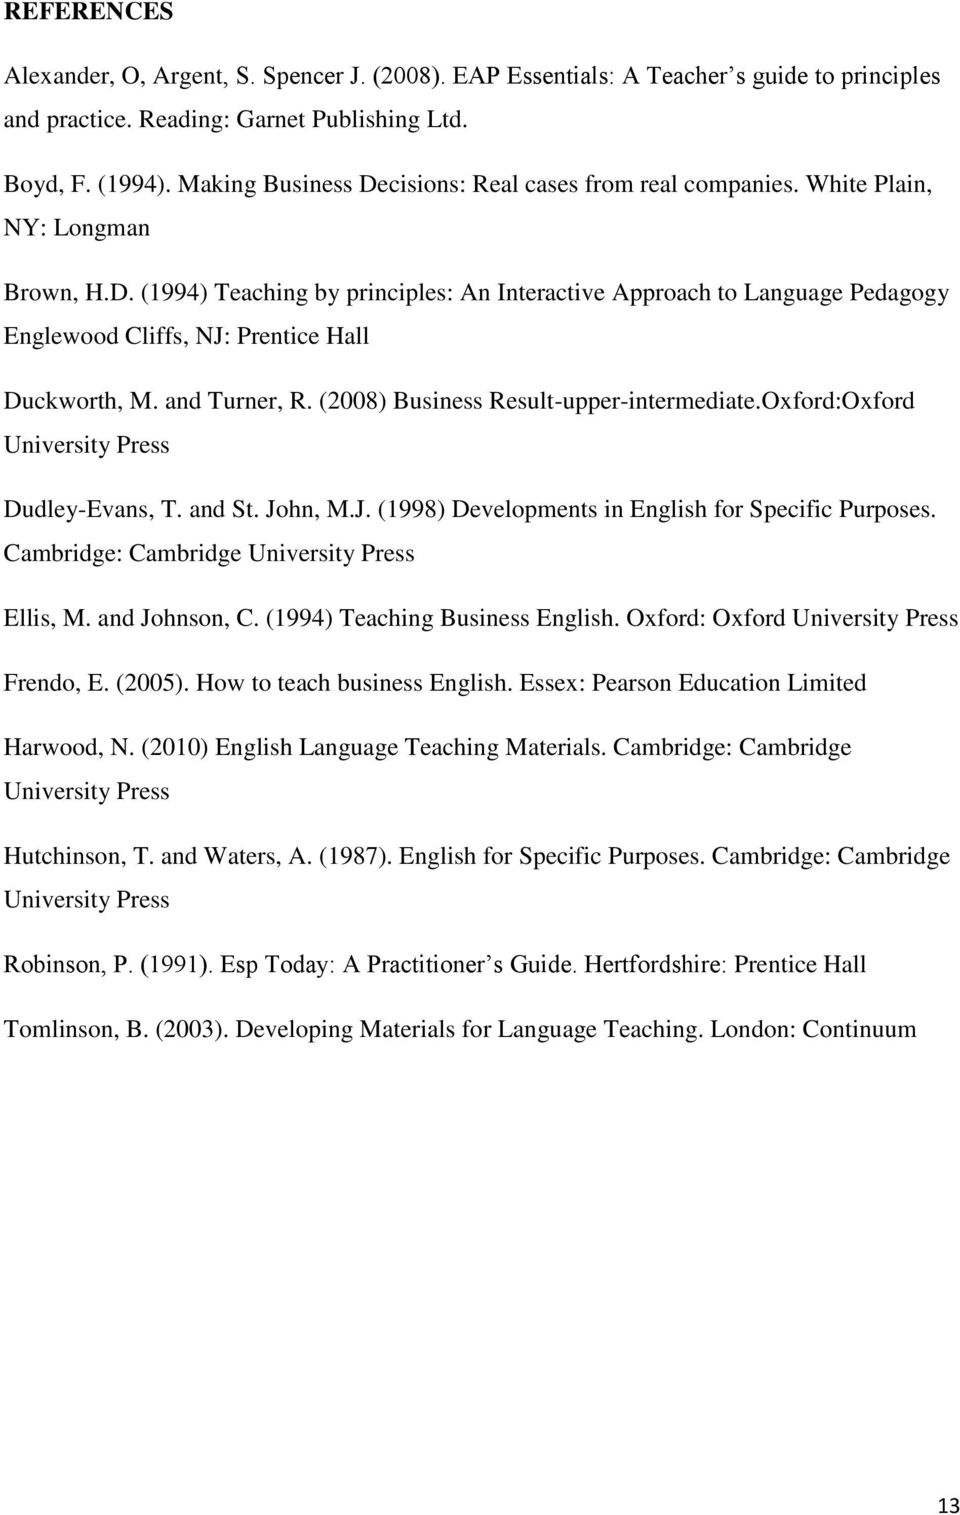 and Turner, R. (2008) Business Result-upper-intermediate.Oxford:Oxford University Press Dudley-Evans, T. and St. John, M.J. (1998) Developments in English for Specific Purposes.